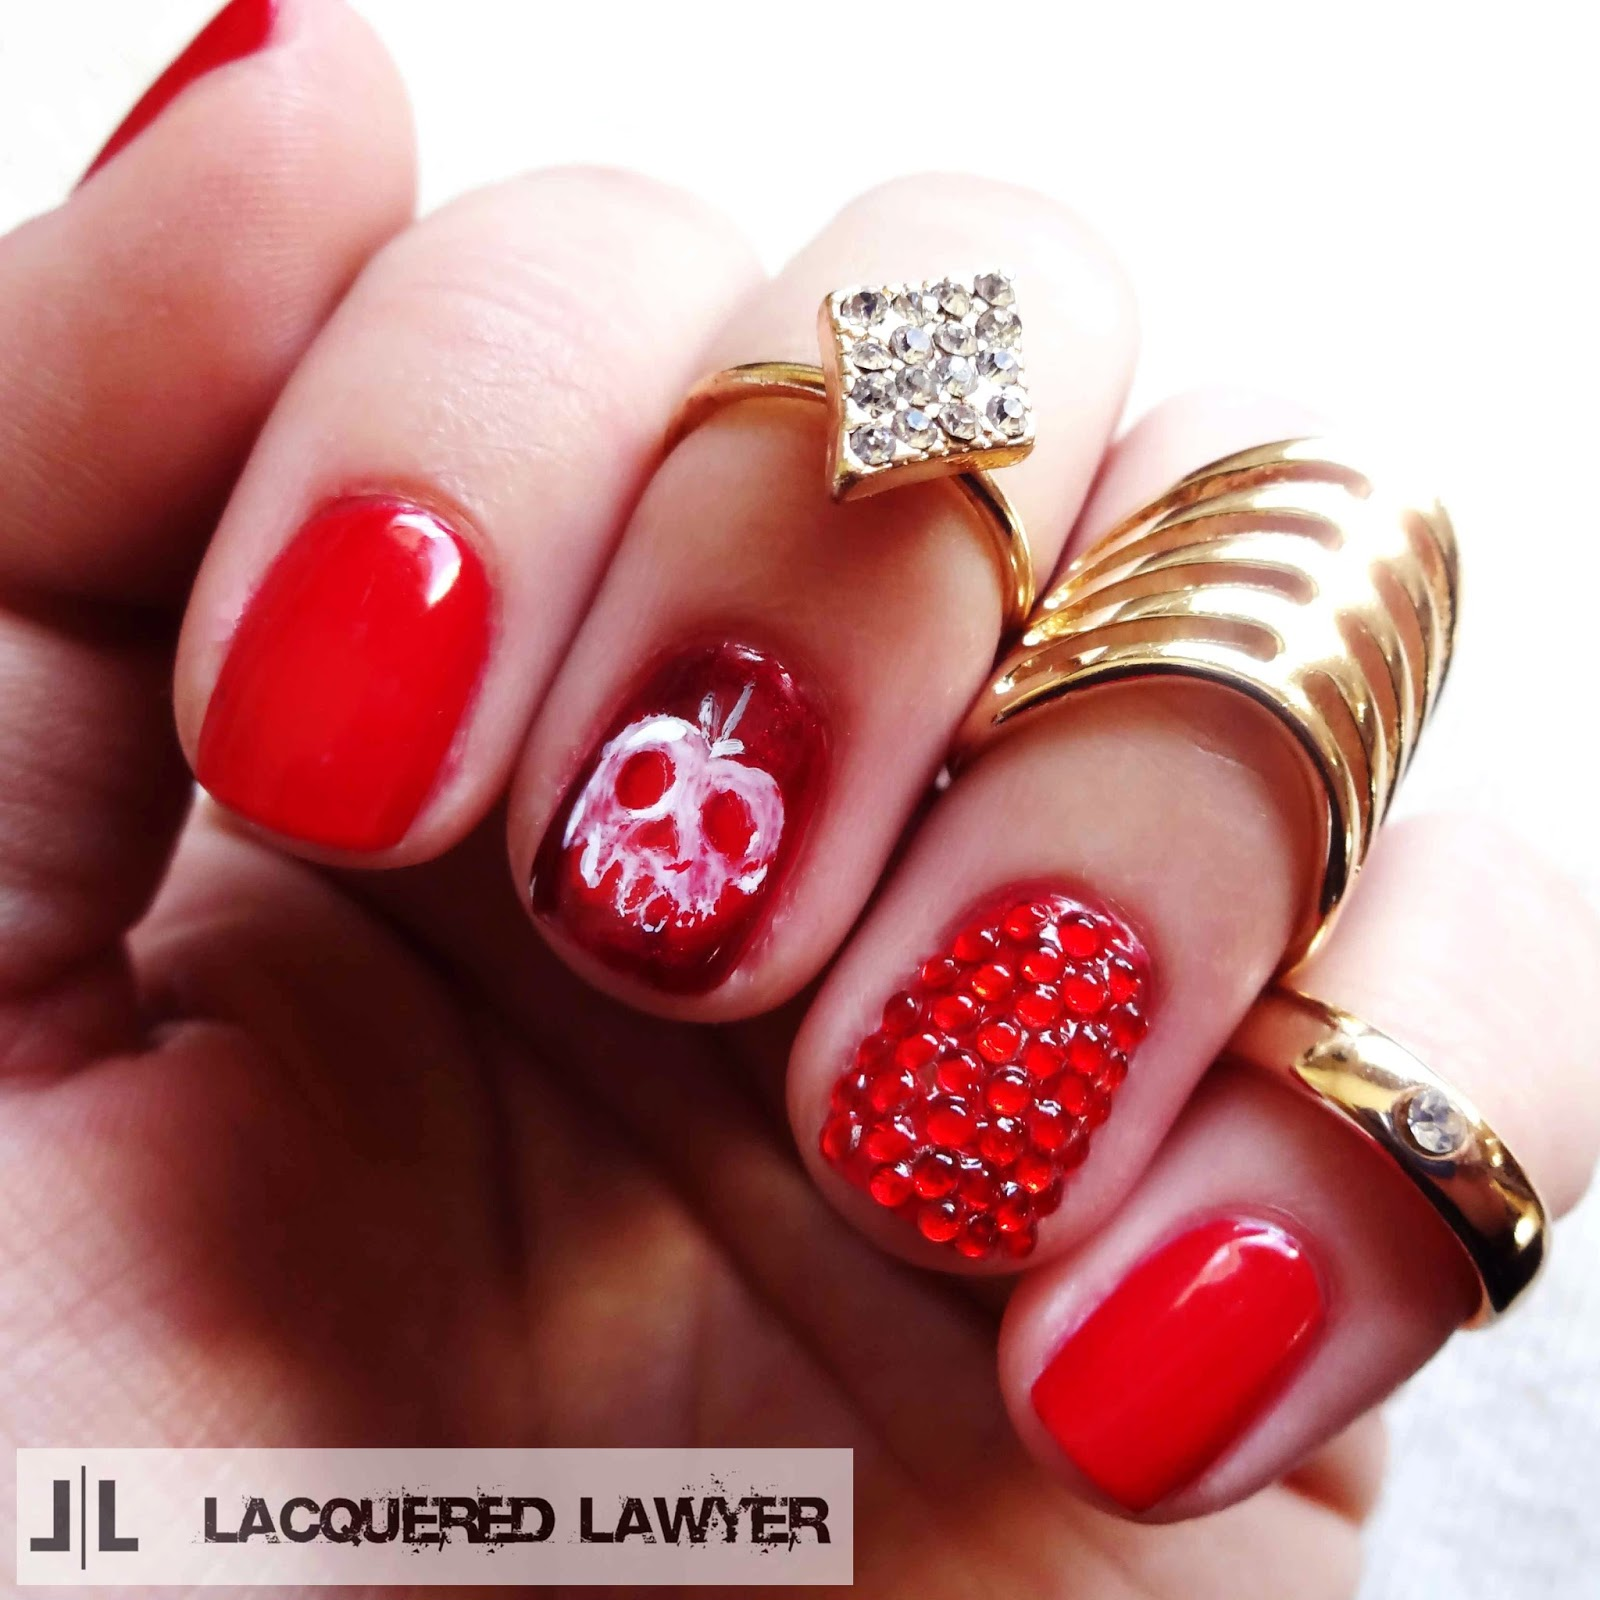 Lacquered Lawyer | Nail Art Blog: January 2015